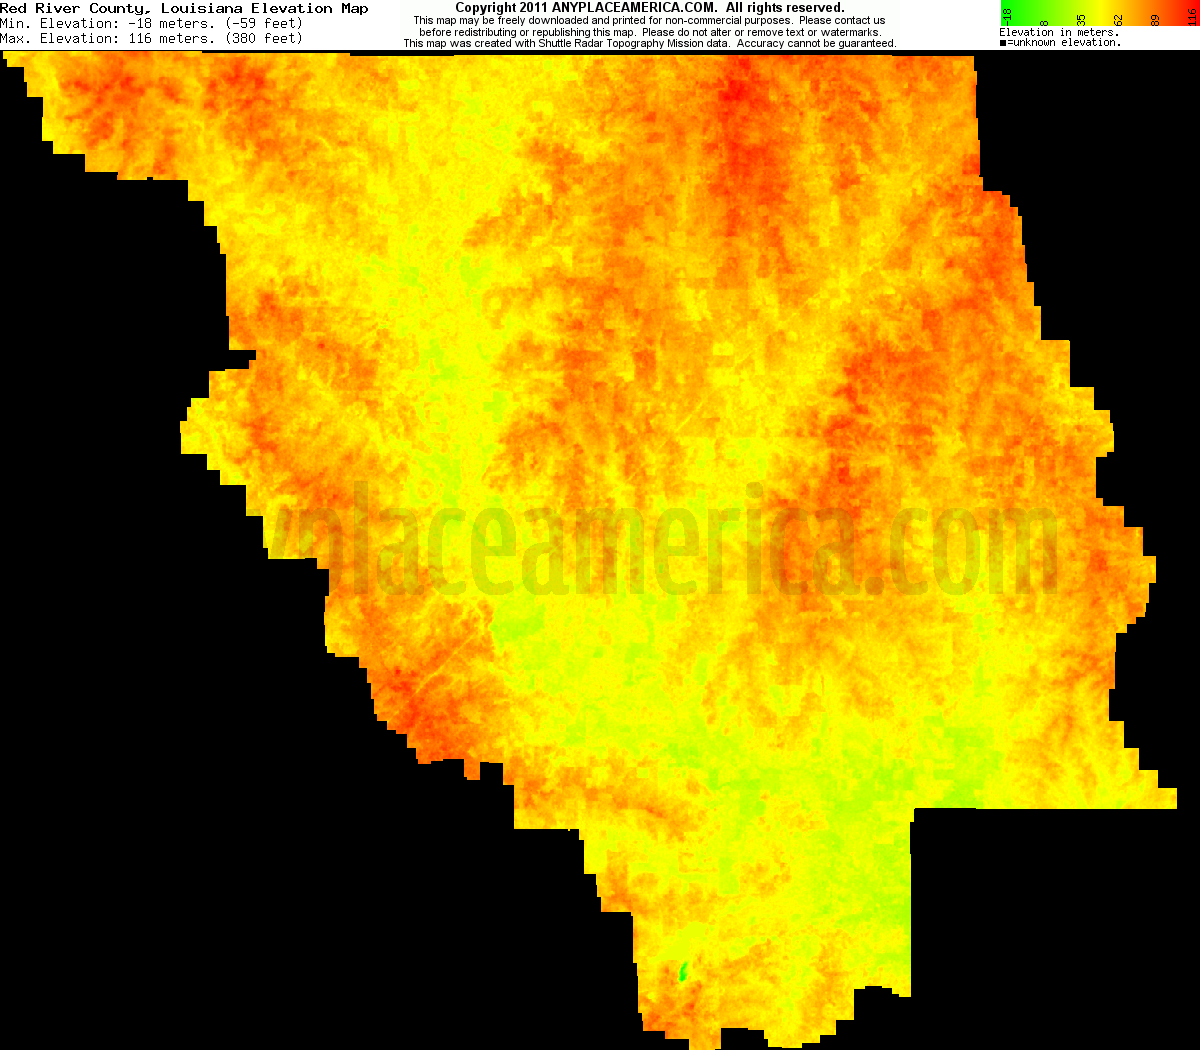 Free Red River Parish Louisiana Topo Maps Elevations - Us map red river